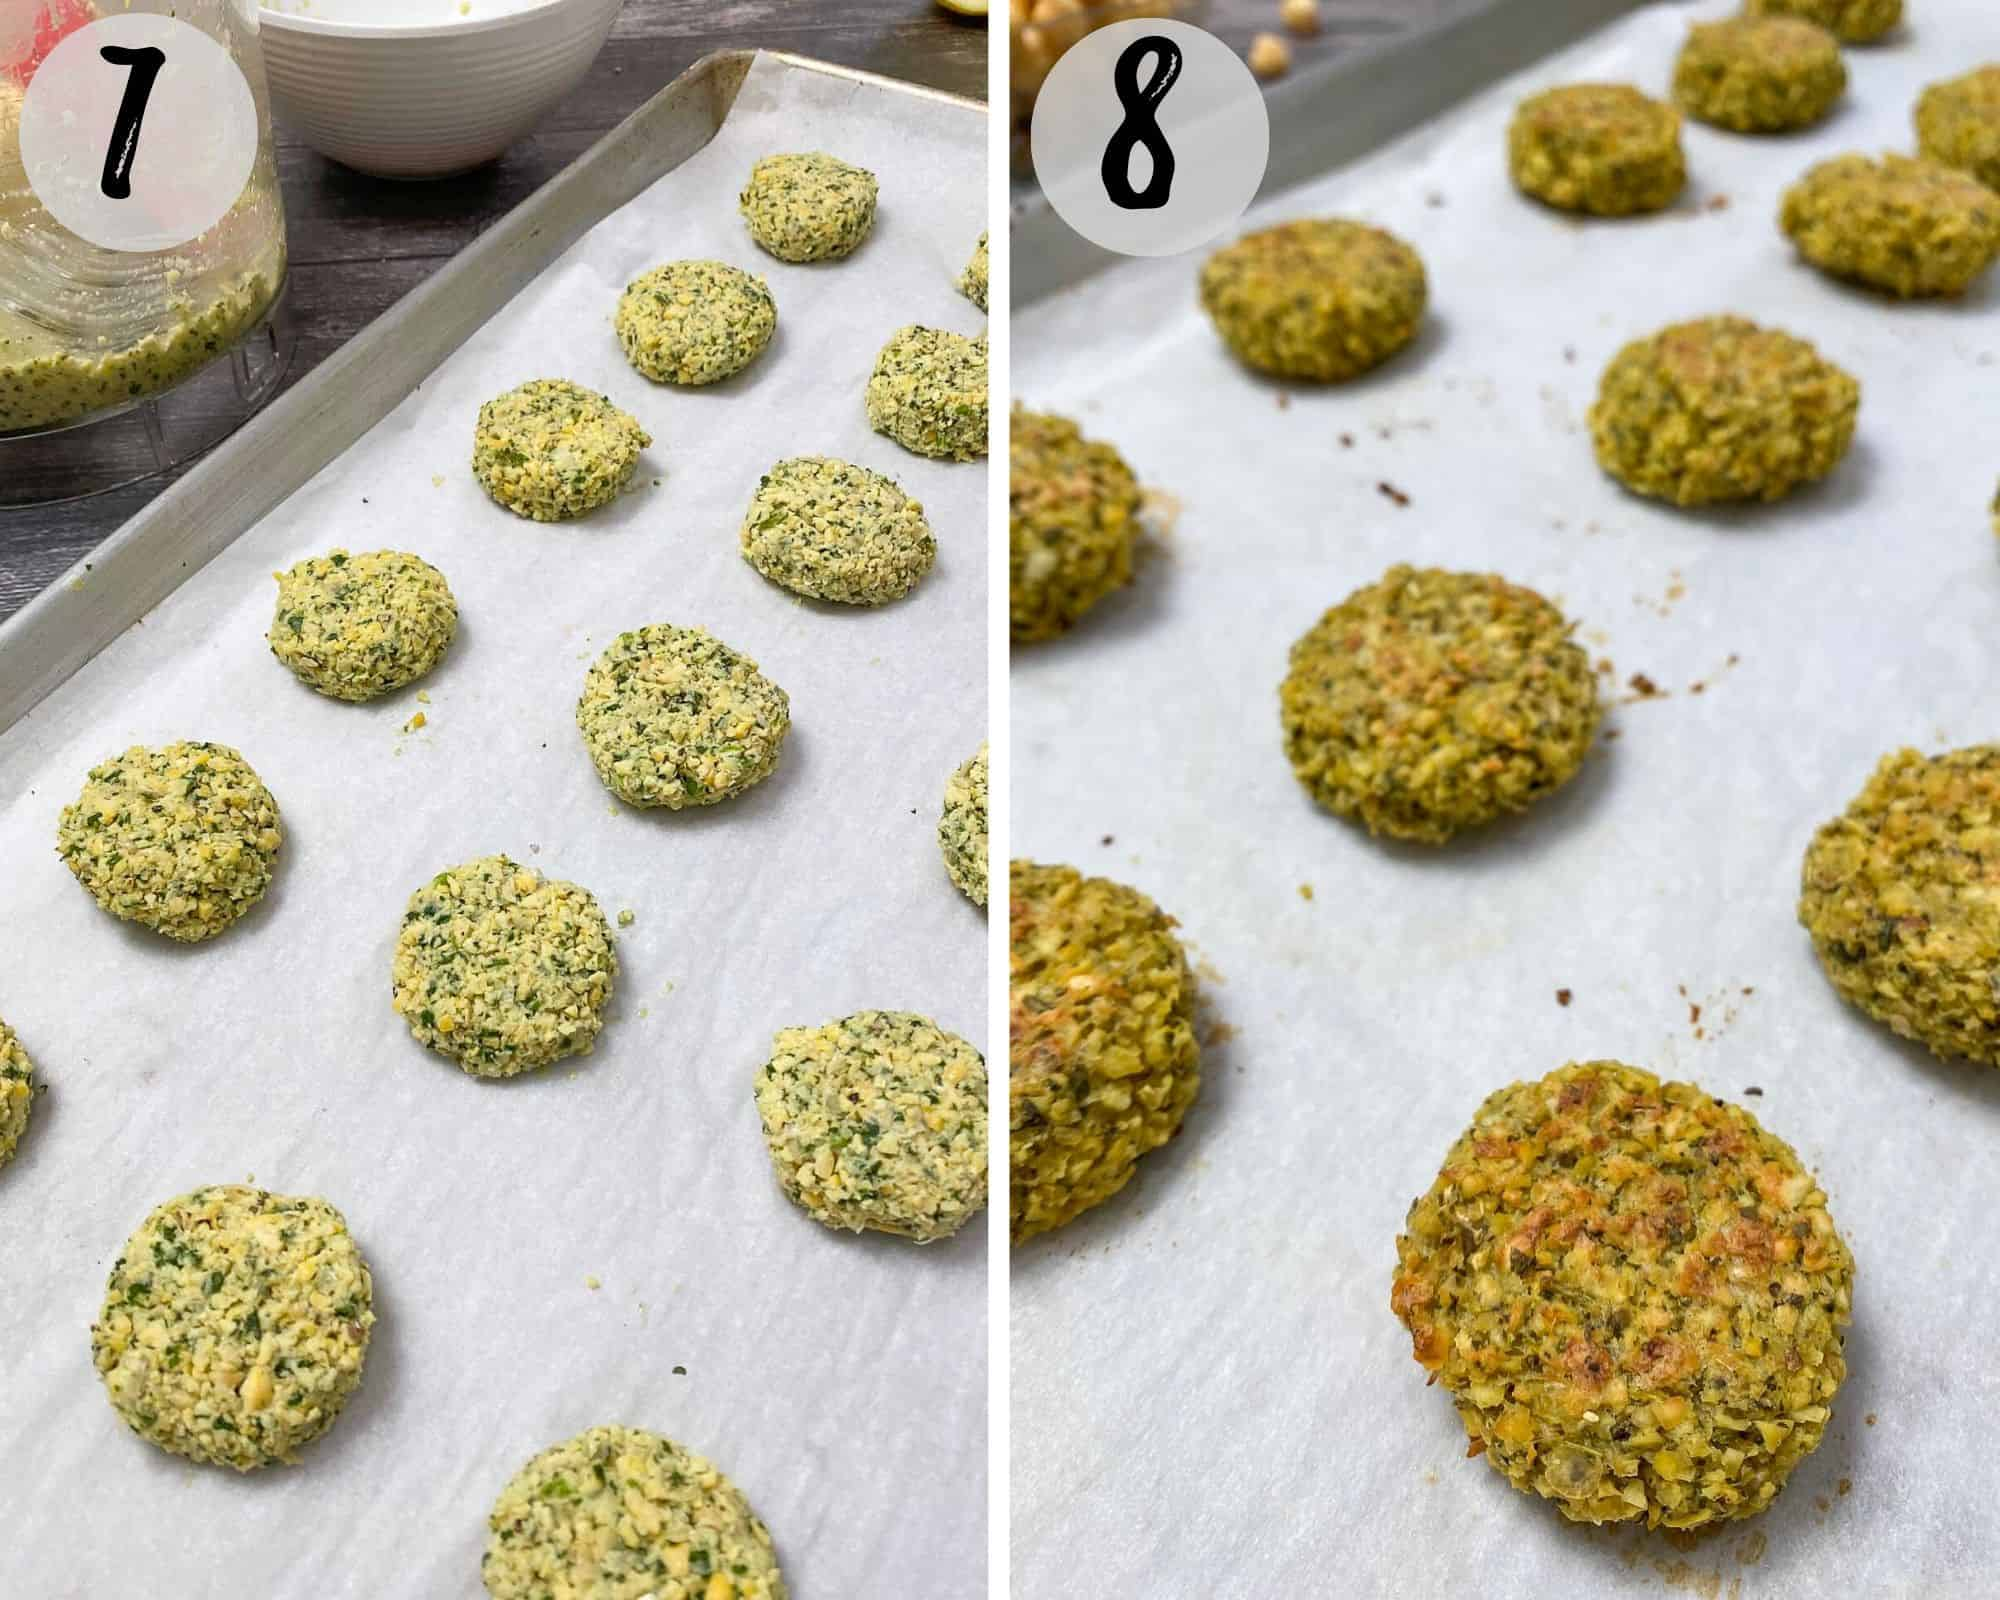 Falafel on baking tray before and after baking.